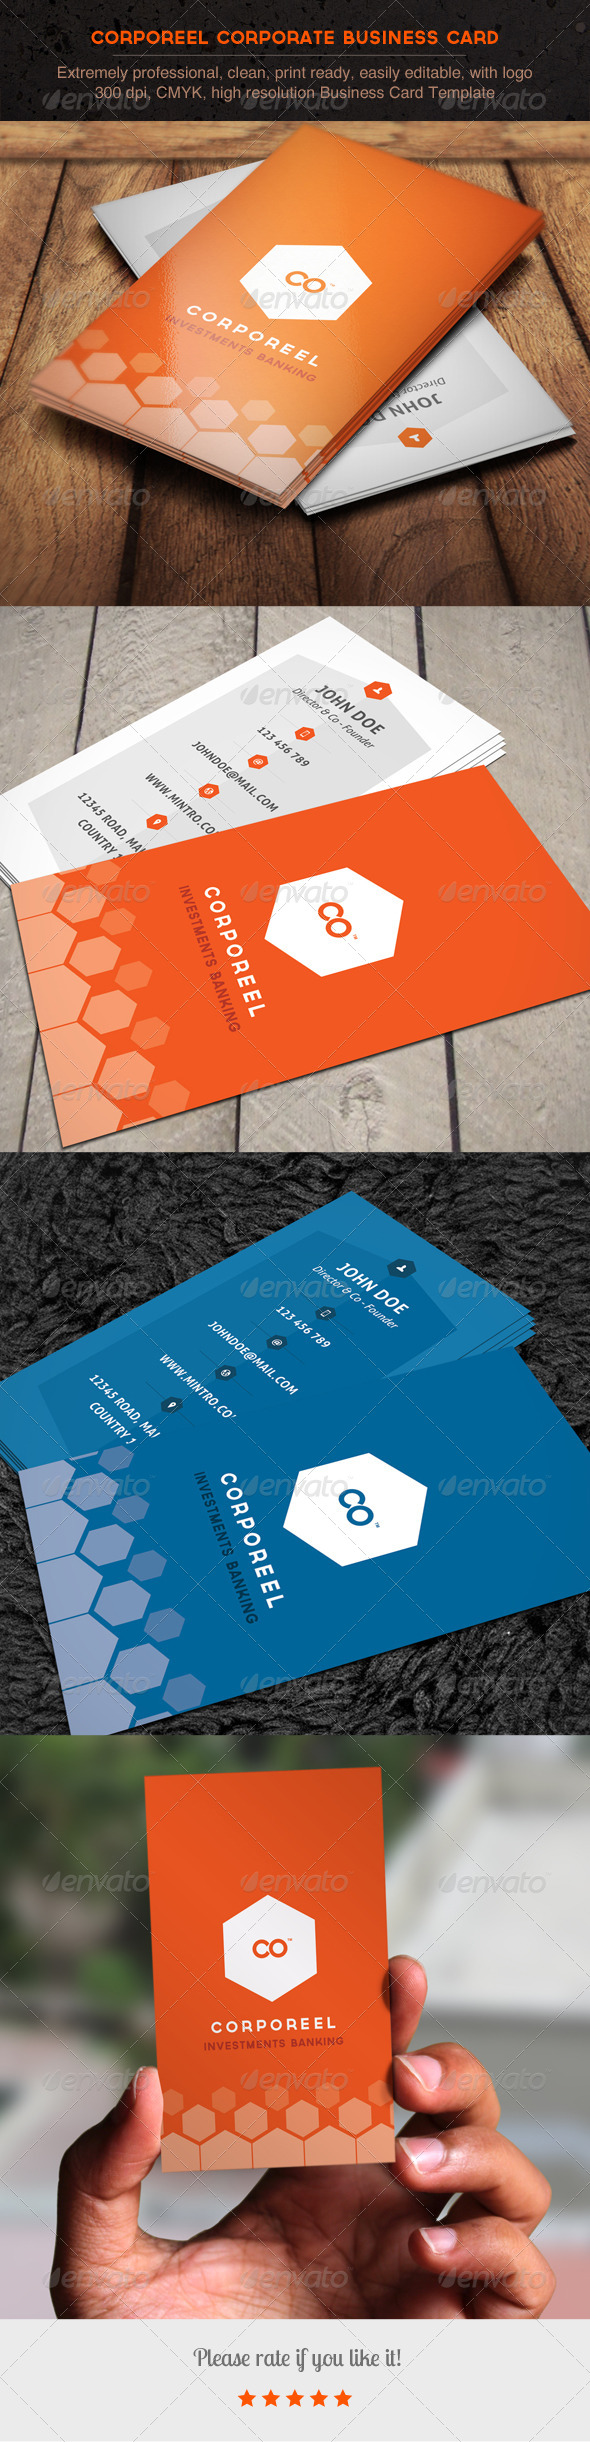 GraphicRiver Corporeel Corporate Business Card 4976051